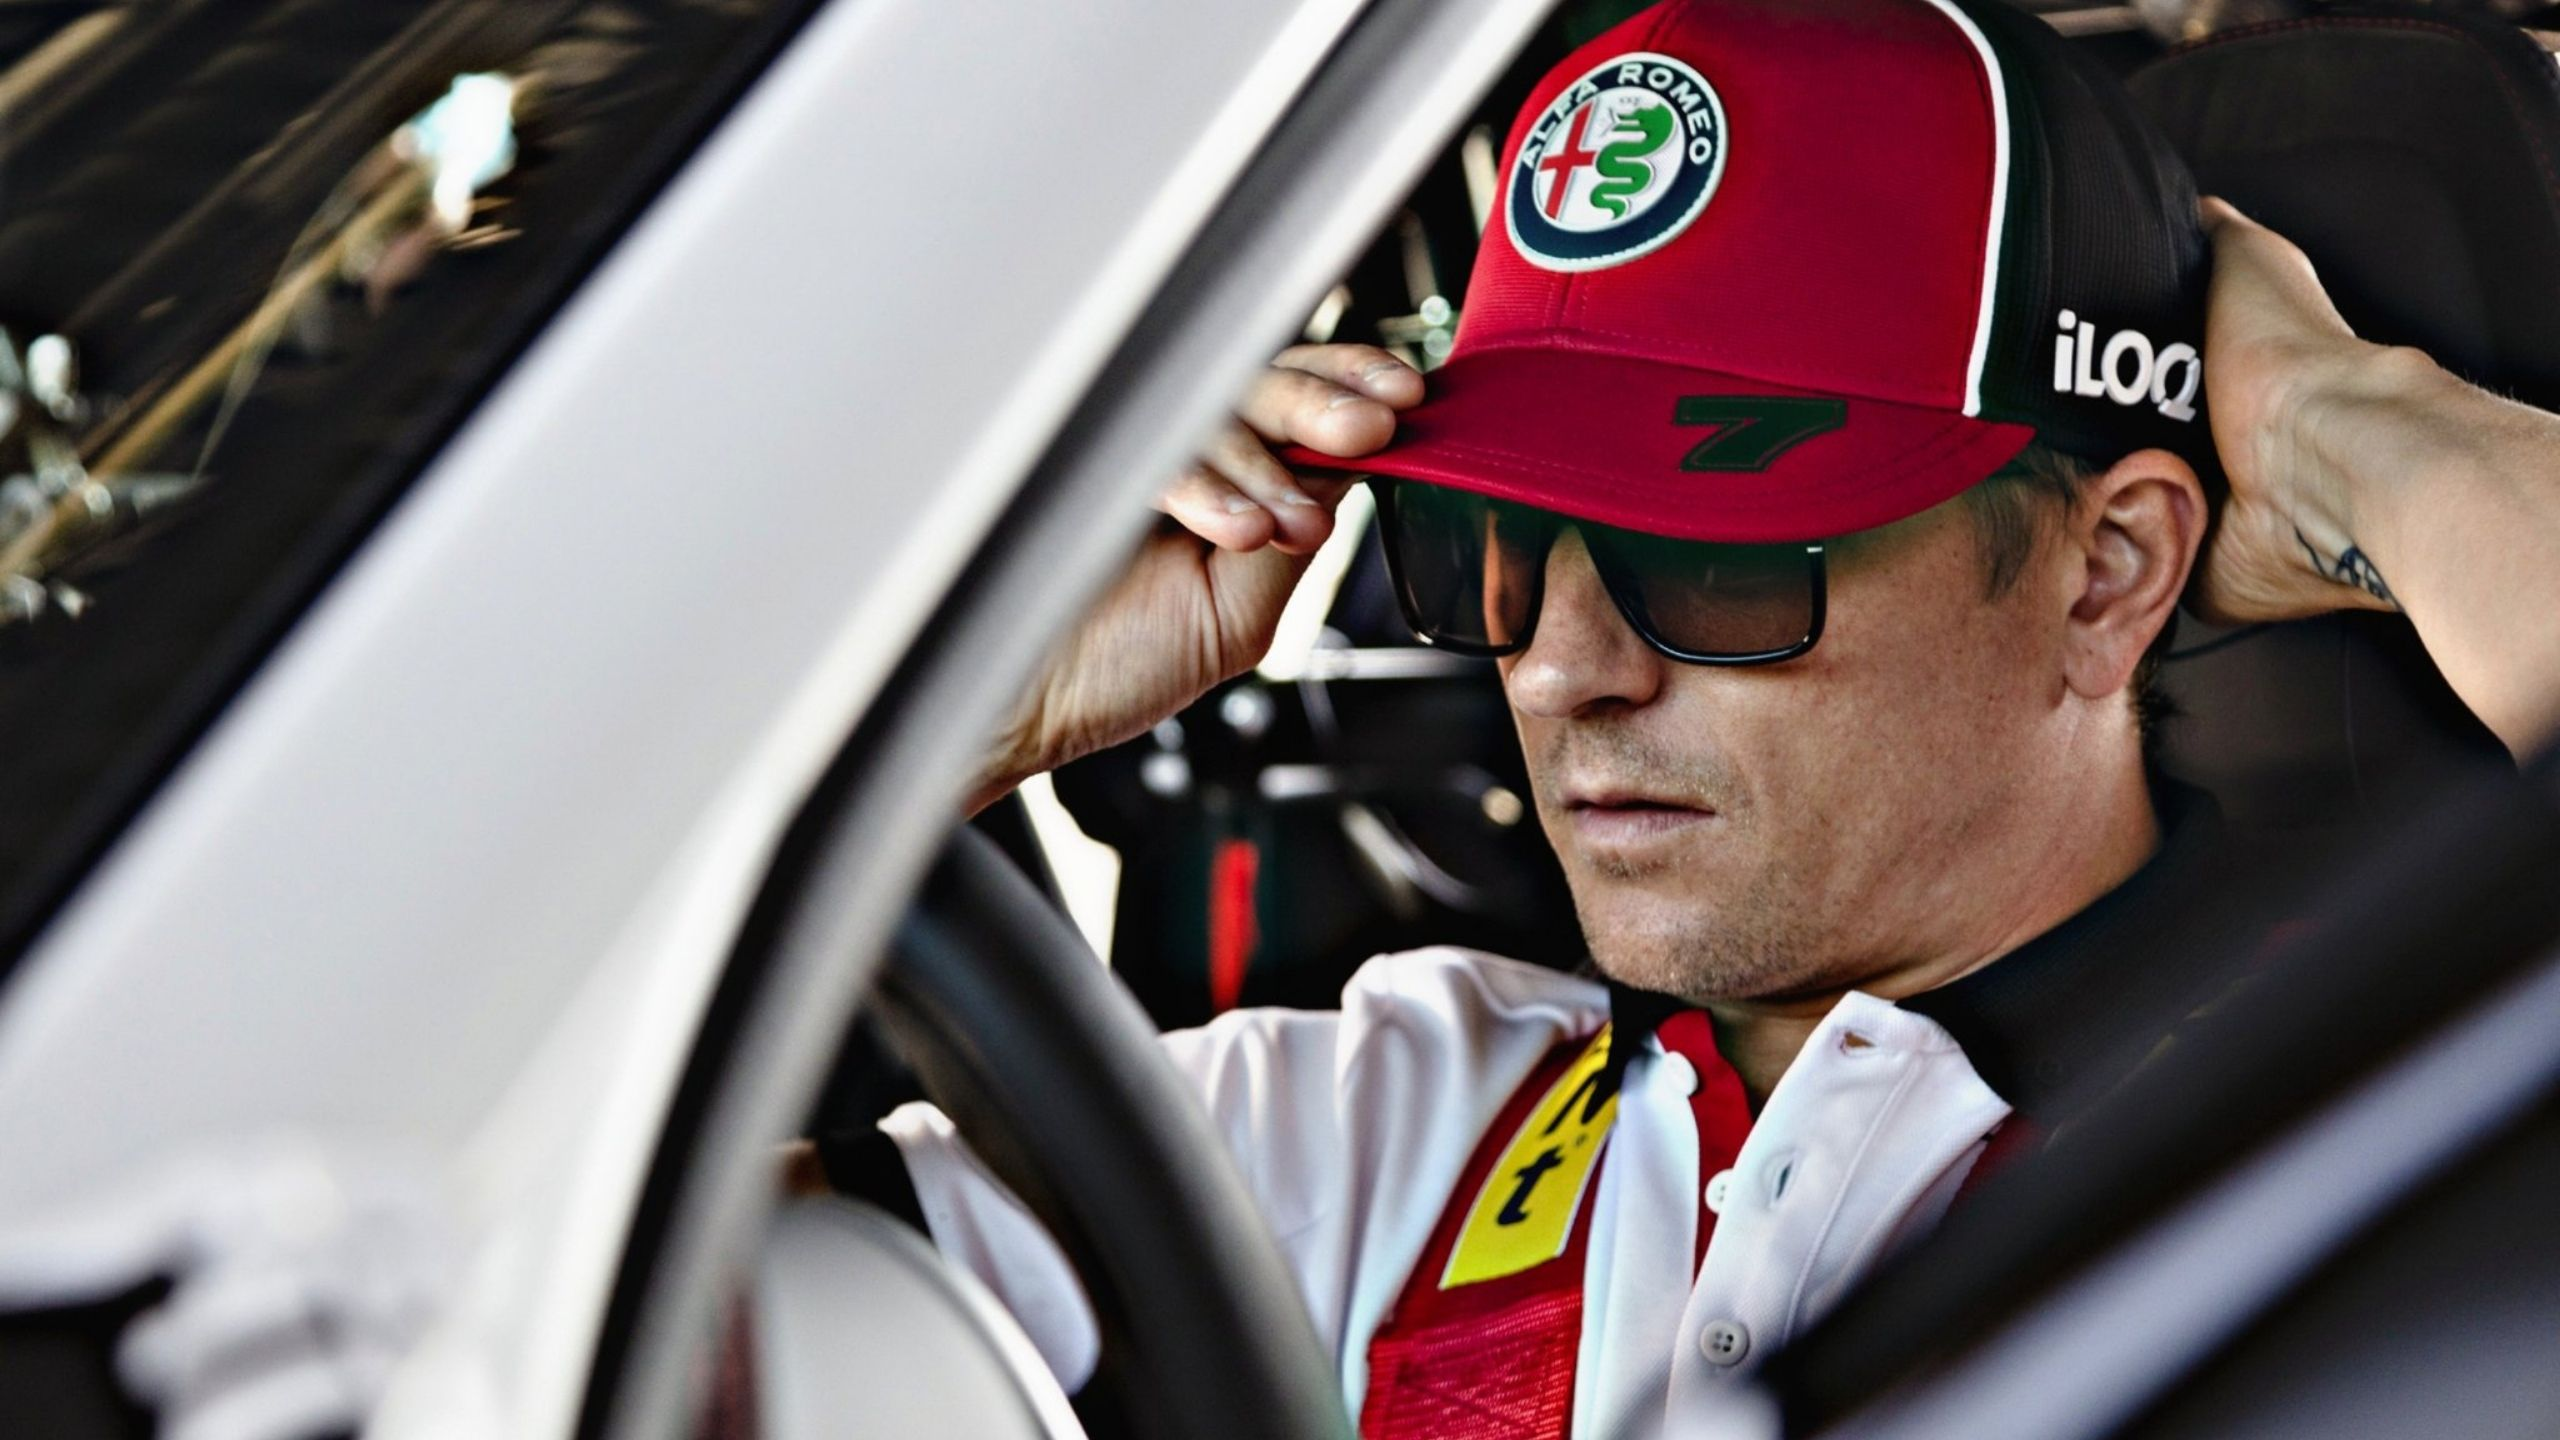 Kimi Raikkonen watches insane Portuguese GP first lap with his son, as fellow drivers rave about it